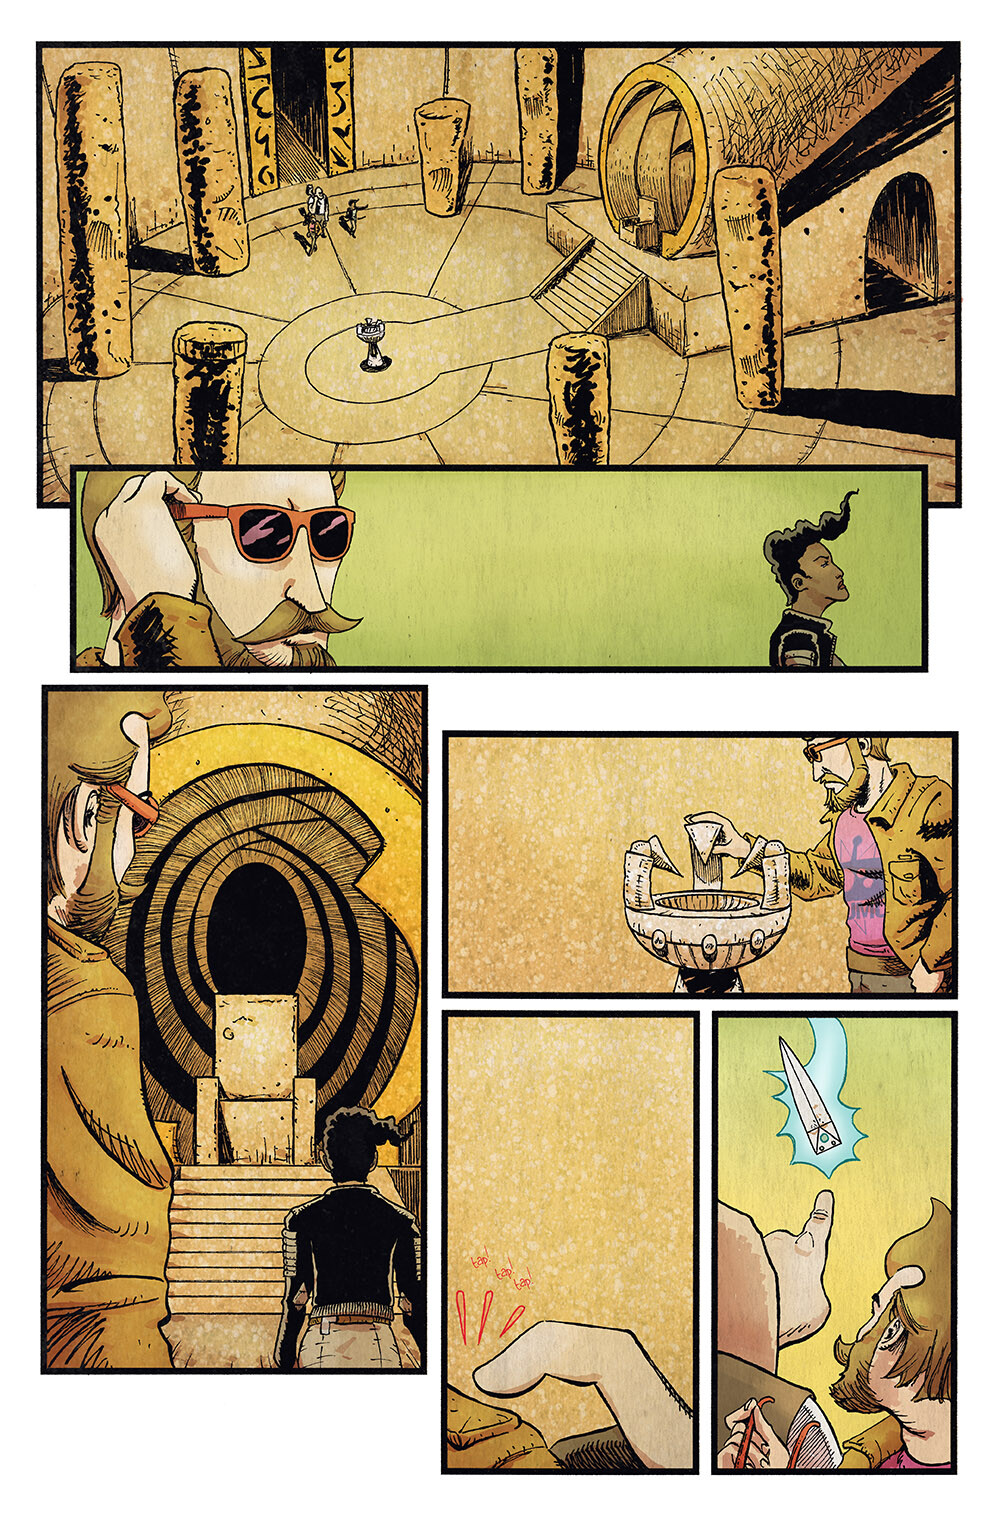 Vagrant Queen: A Planet Called Doom #5 pg 18